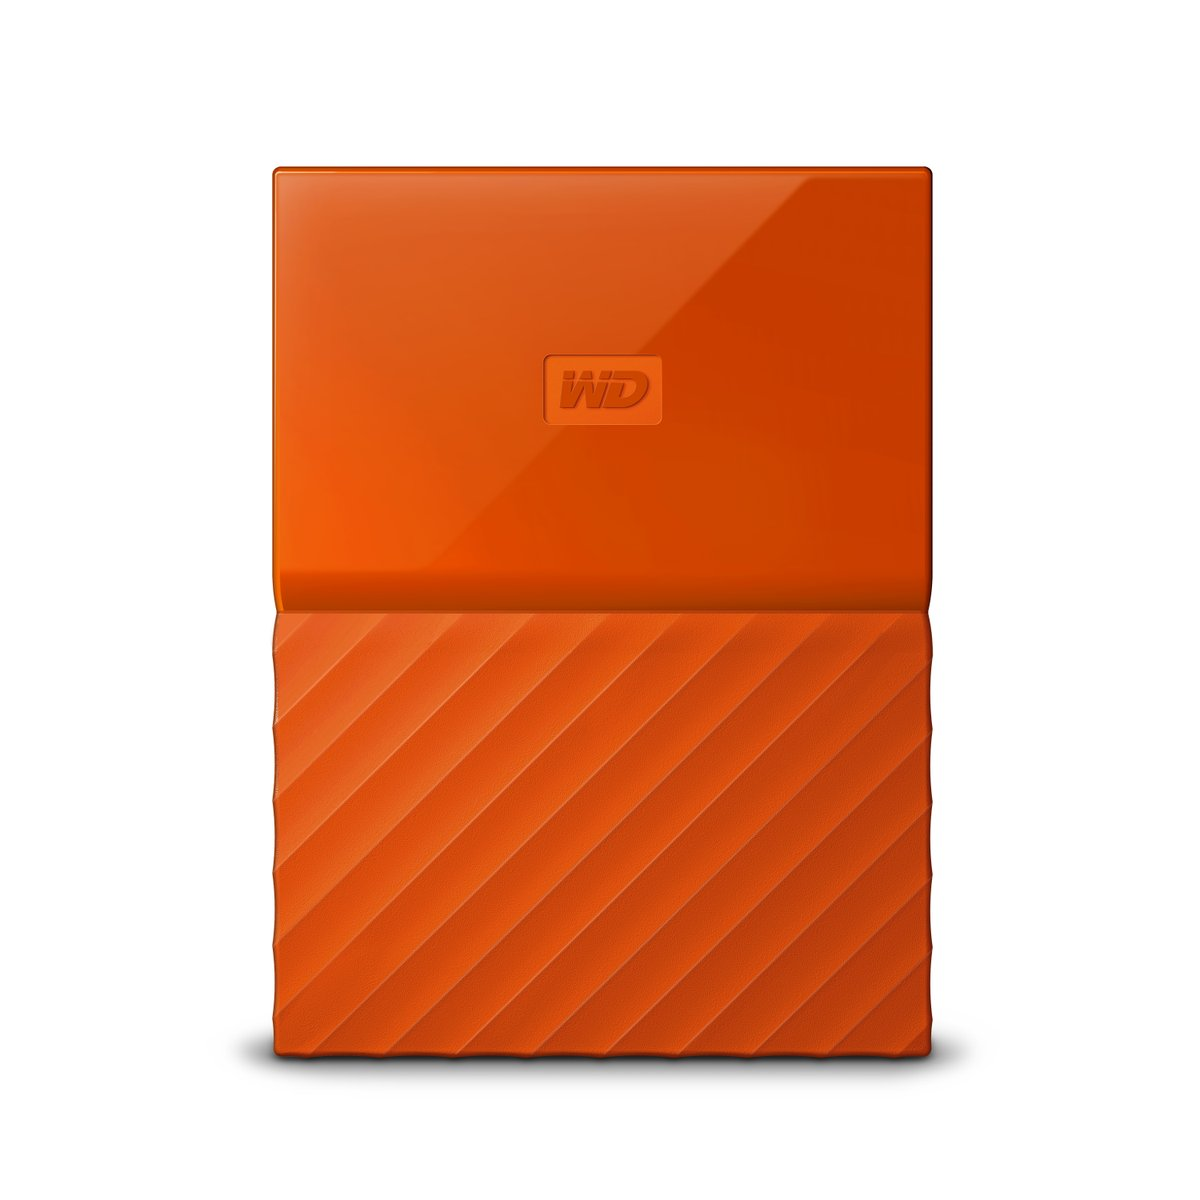 WD My Passport portable -   - 2 TB